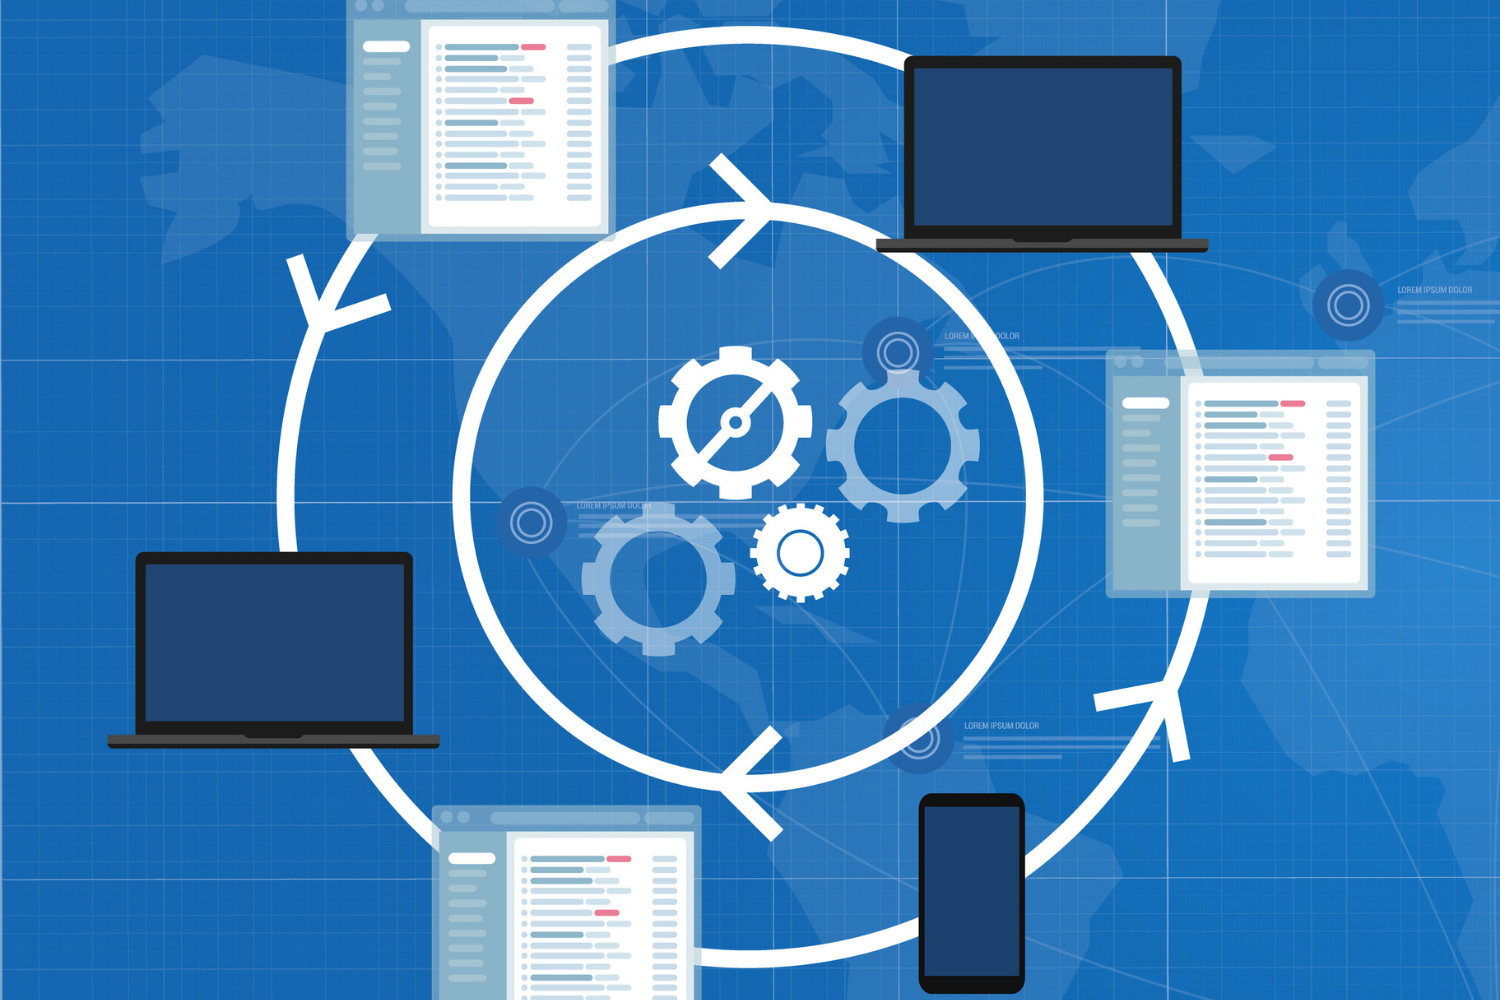 An illustration of multiple revolving arrows in a circle with gears turning in the middle around multiple devices and applications signifying sotware integration complexity